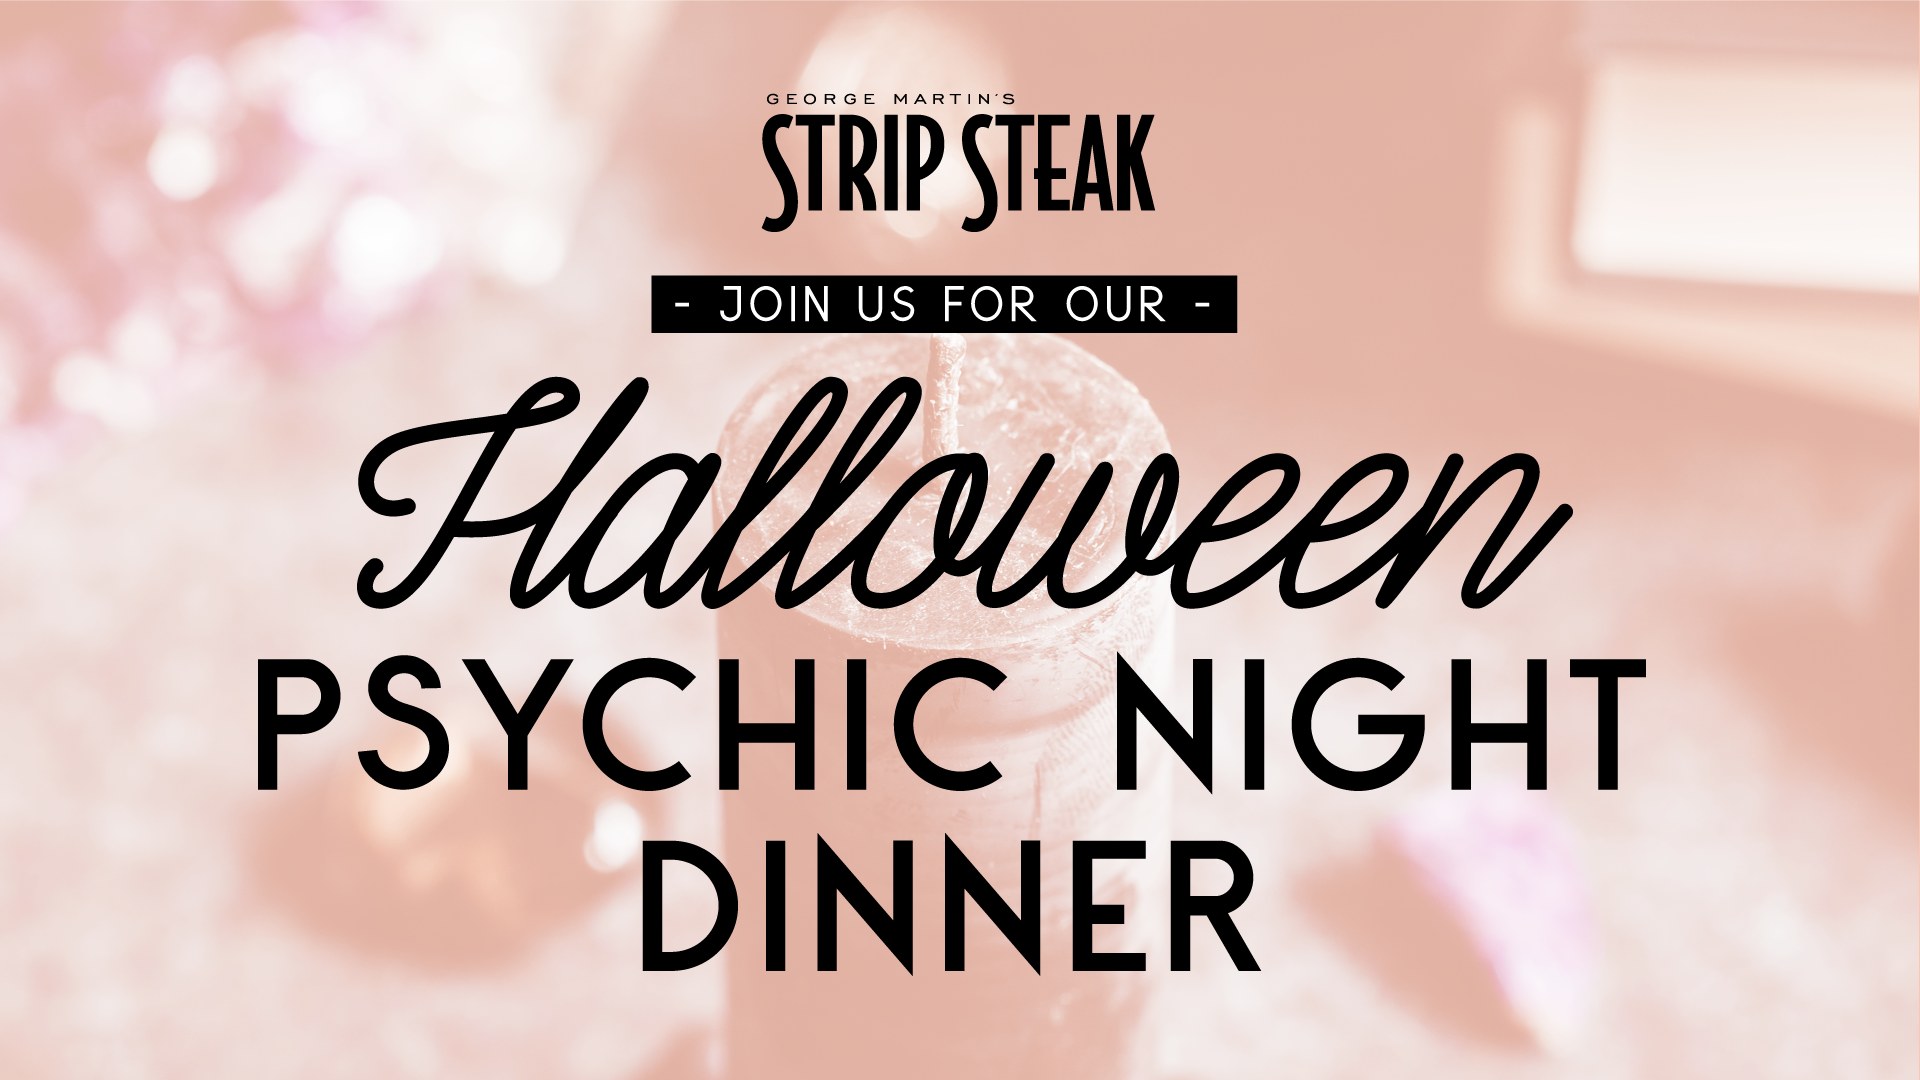 Flyer for Halloween Psychic Night Dinner at Strip Steak on Thursday, October 31st